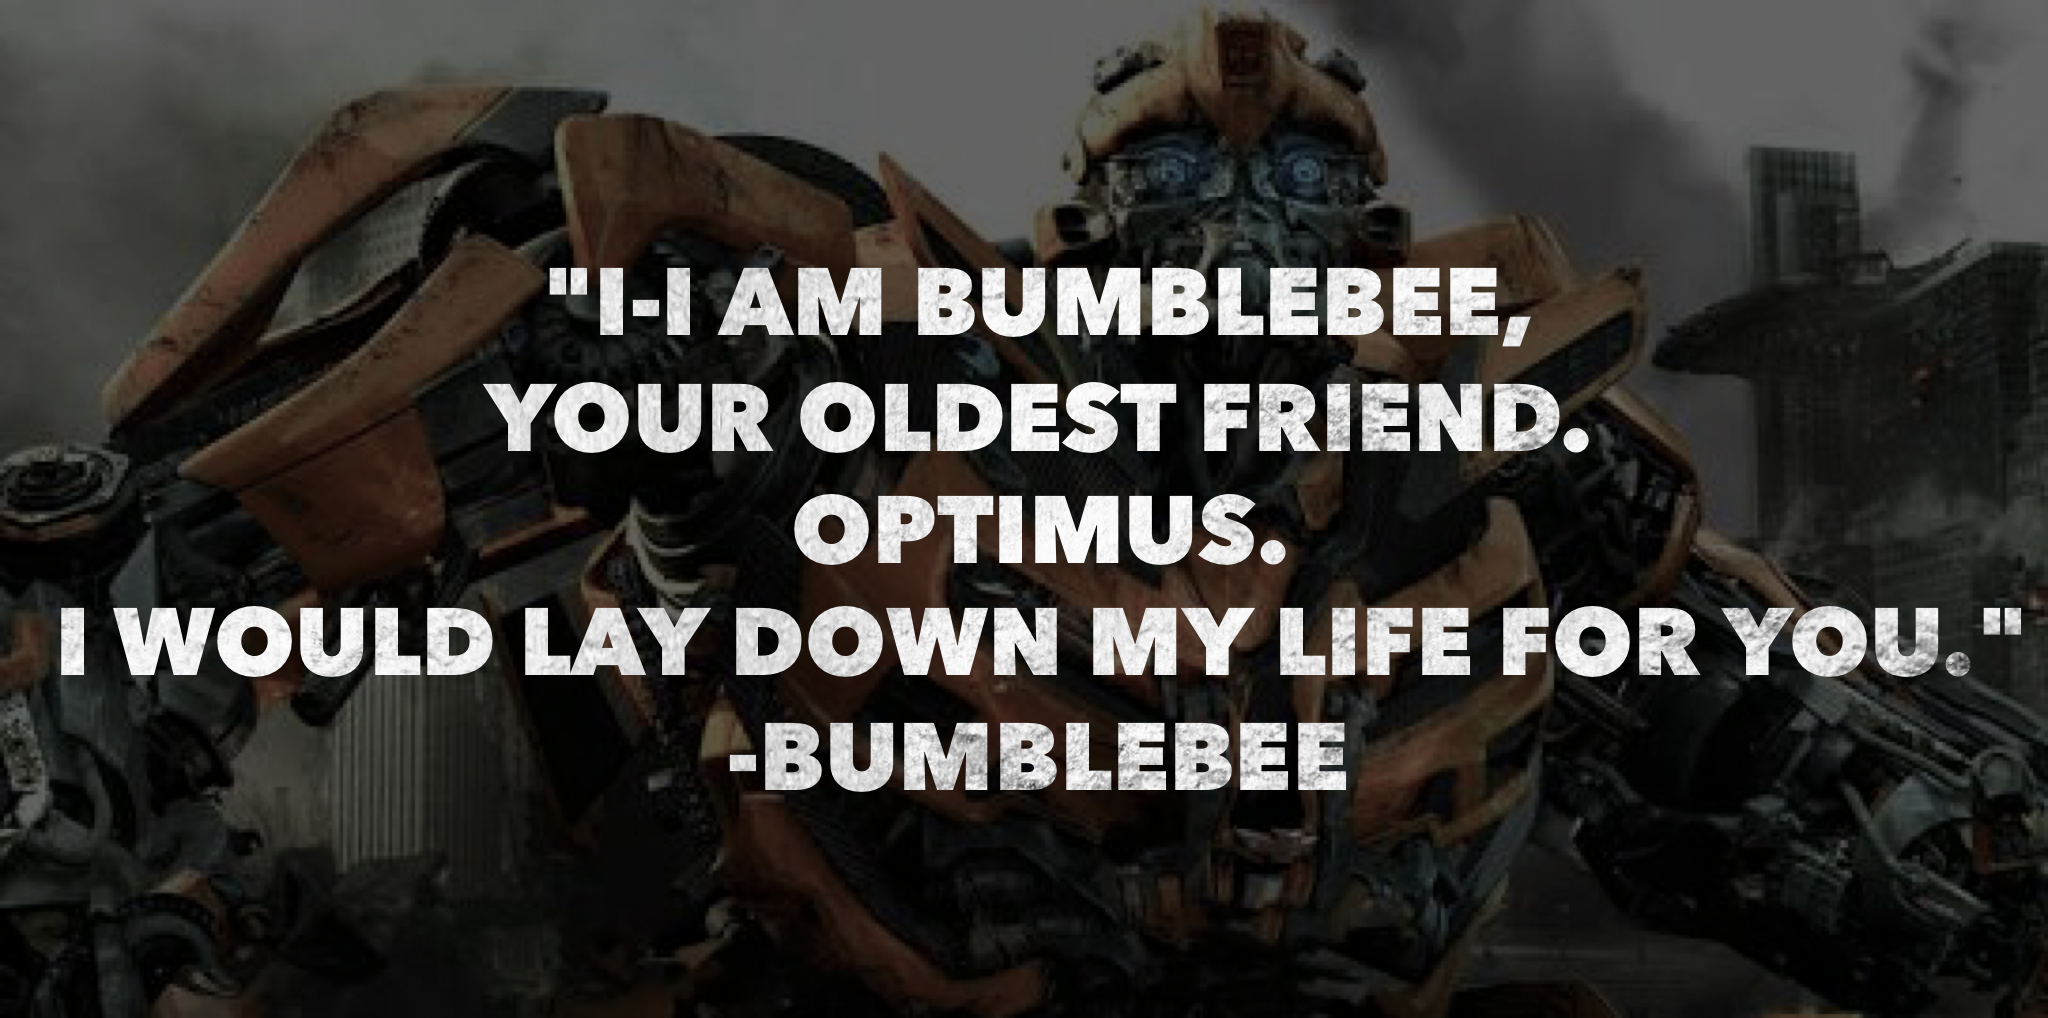 bumblebee transformers movie quotes | transformers | transformers